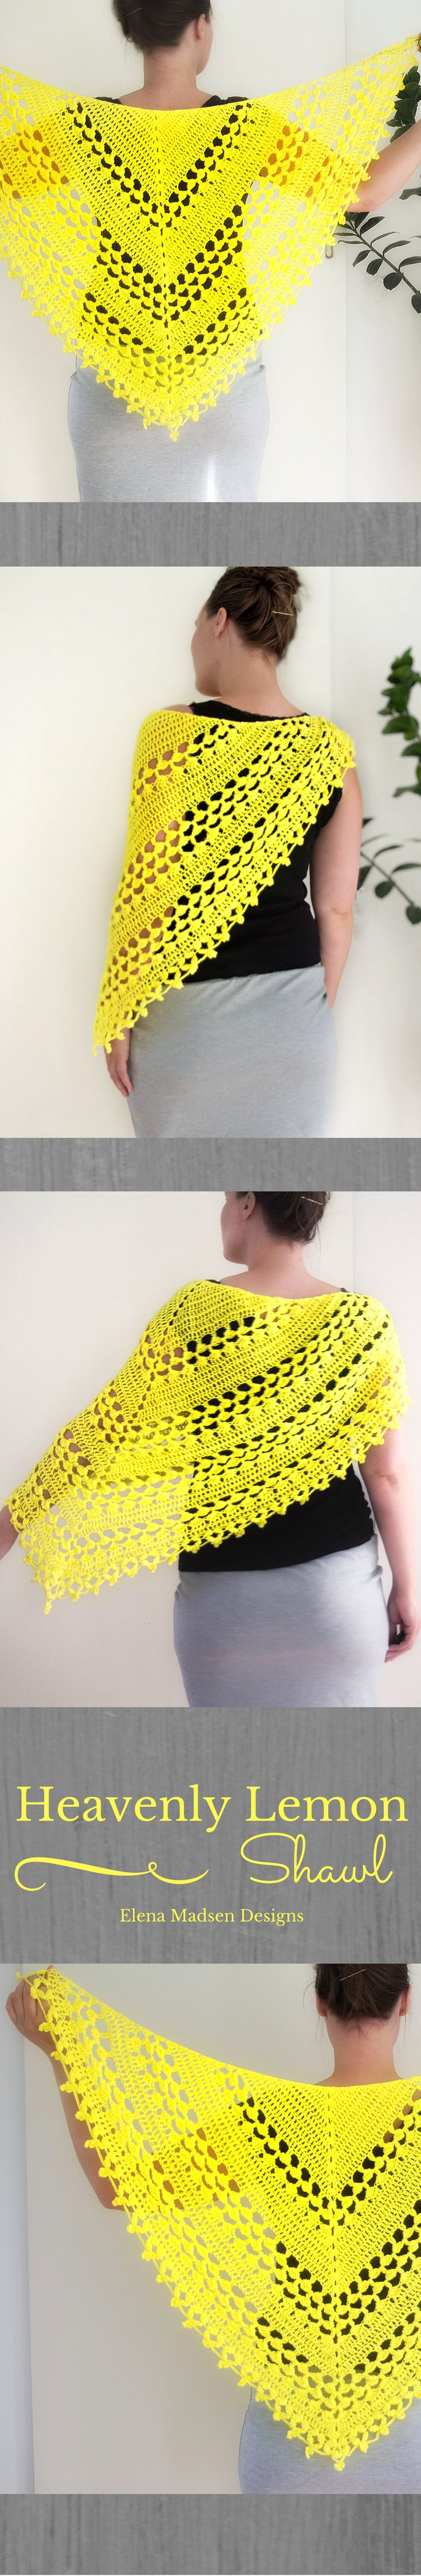 Crochet shawl pattern on Etsy/ Elena Madsen Designs. Easy to make. Lovely triangle shawl with the perfect lacy look. Includes photo - and videonstructions. Make in solid colors or long gradient yarn :-)